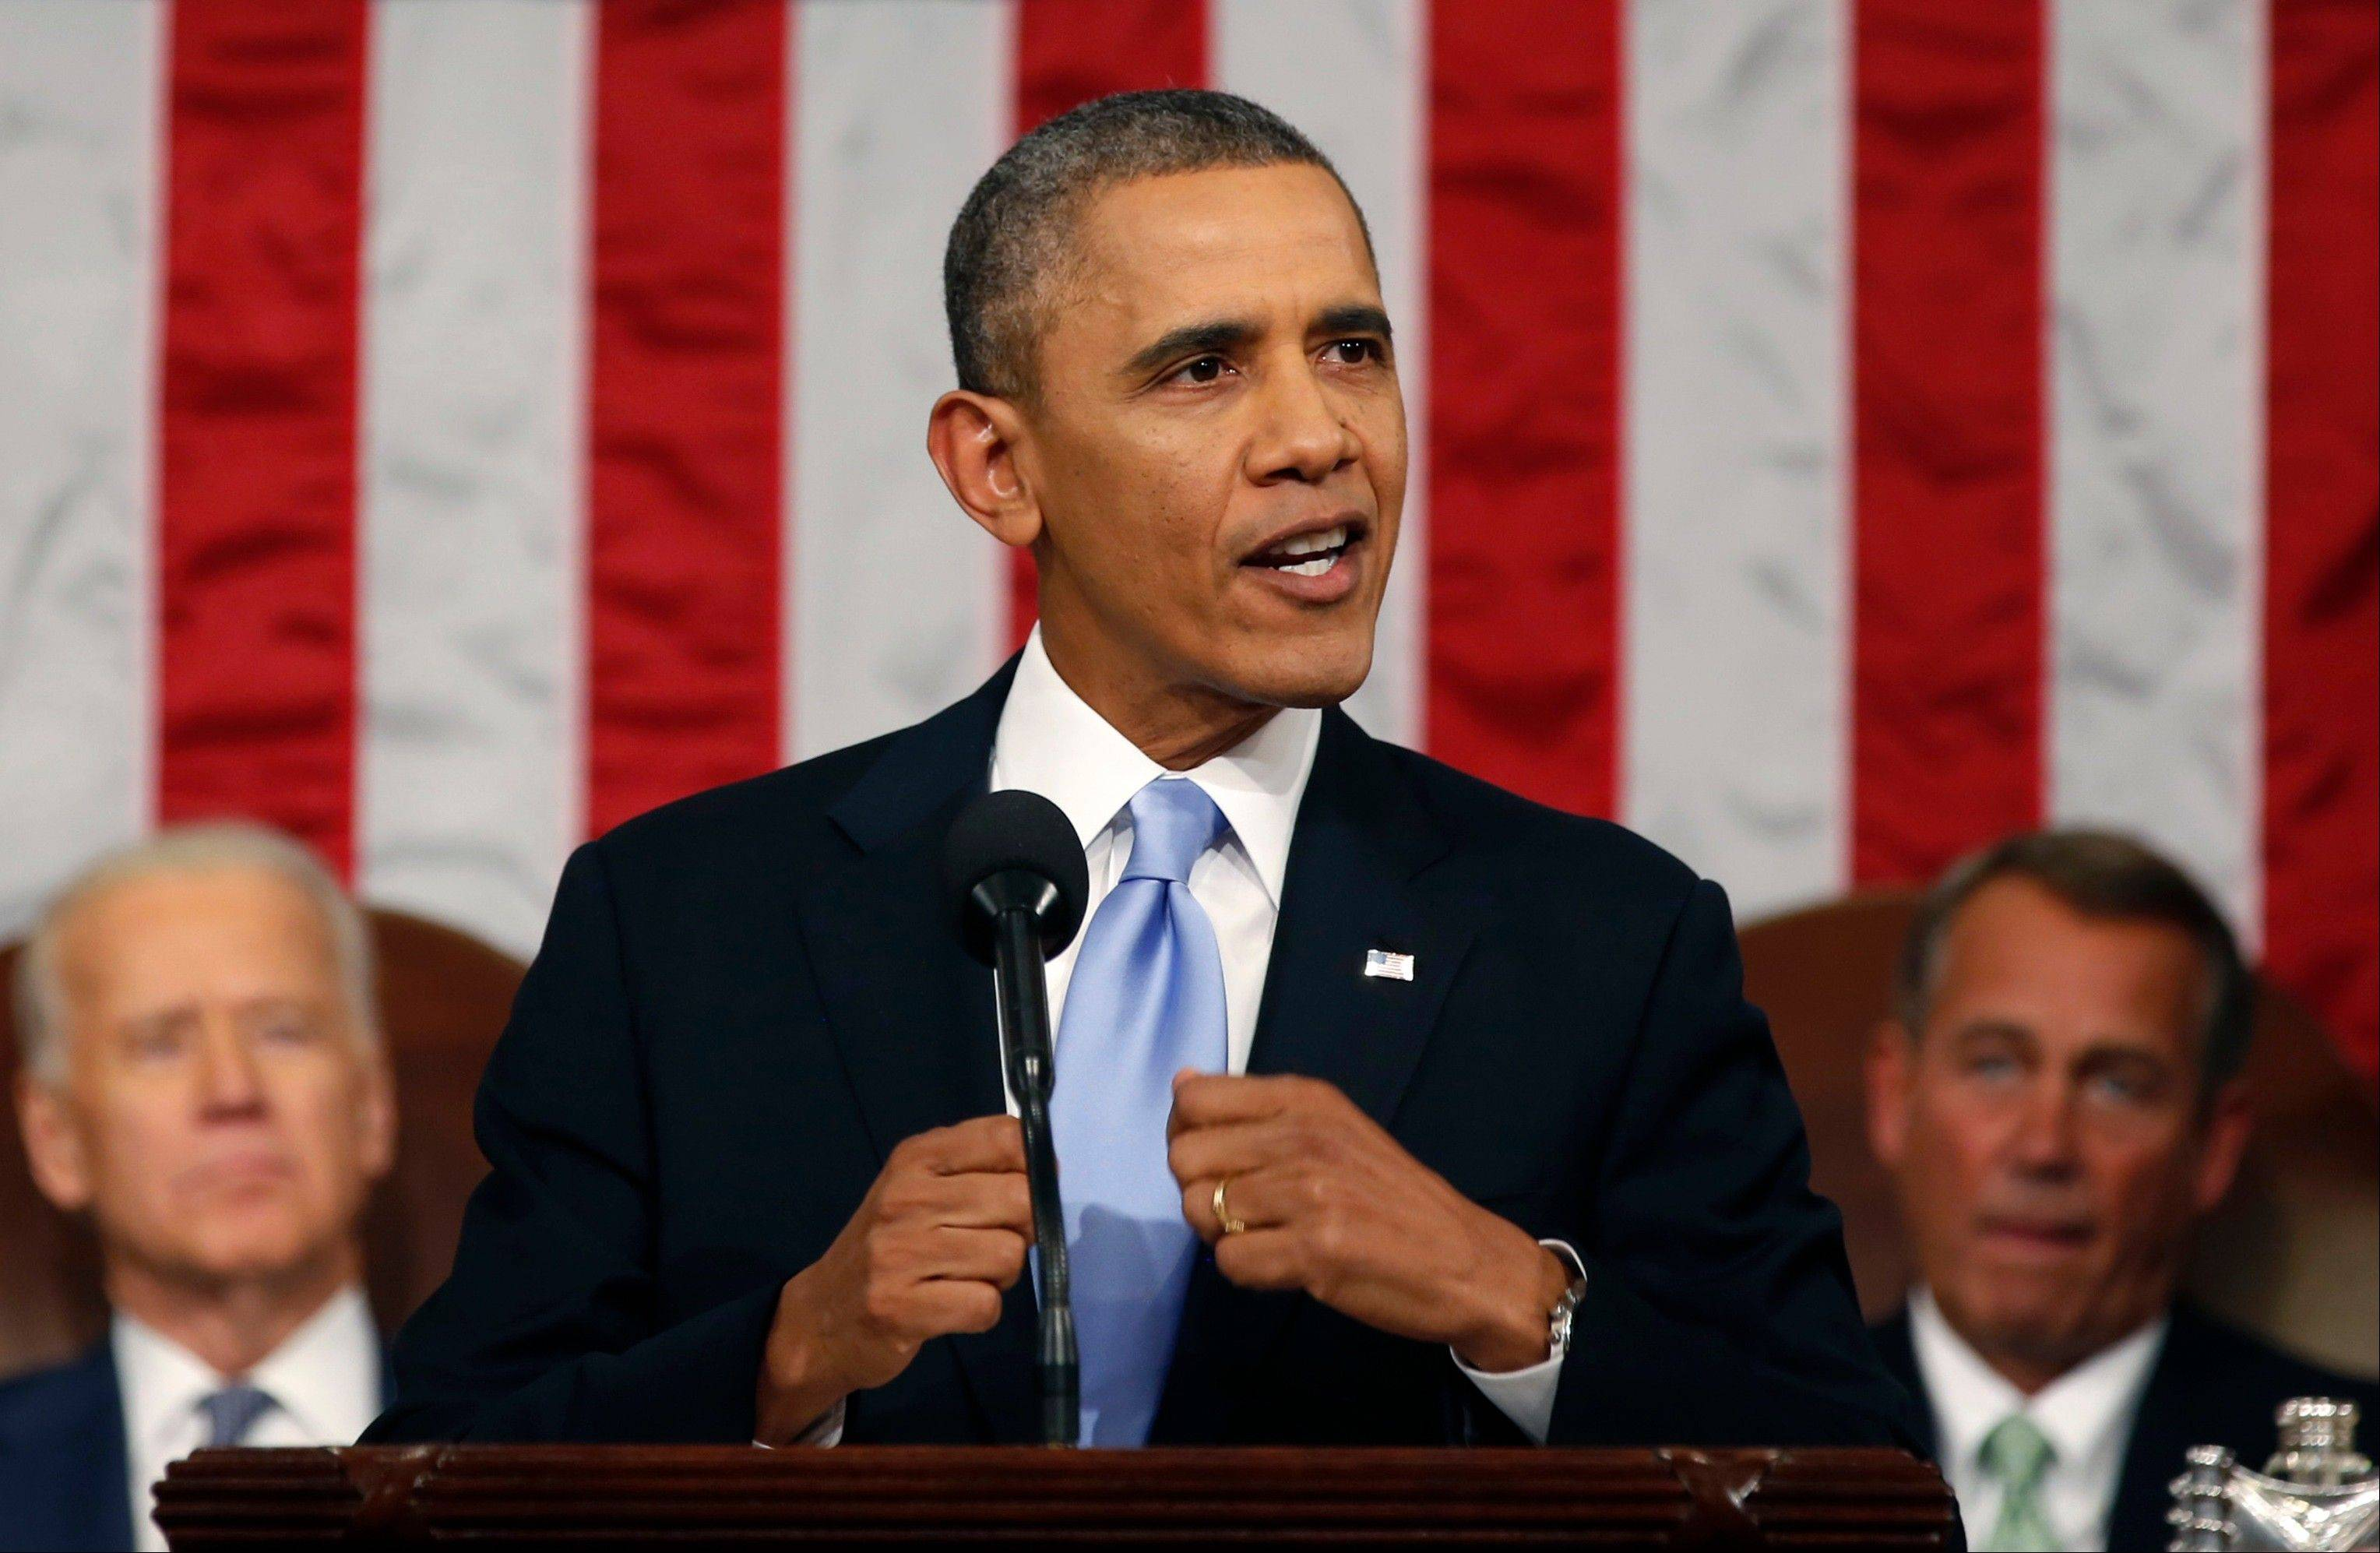 President Barack Obama used his State of the Union address Tuesday night to make his pitch that the nation must come together to address persistent problems, from the wealth gap between rich and poor to economic mobility to lagging schools.